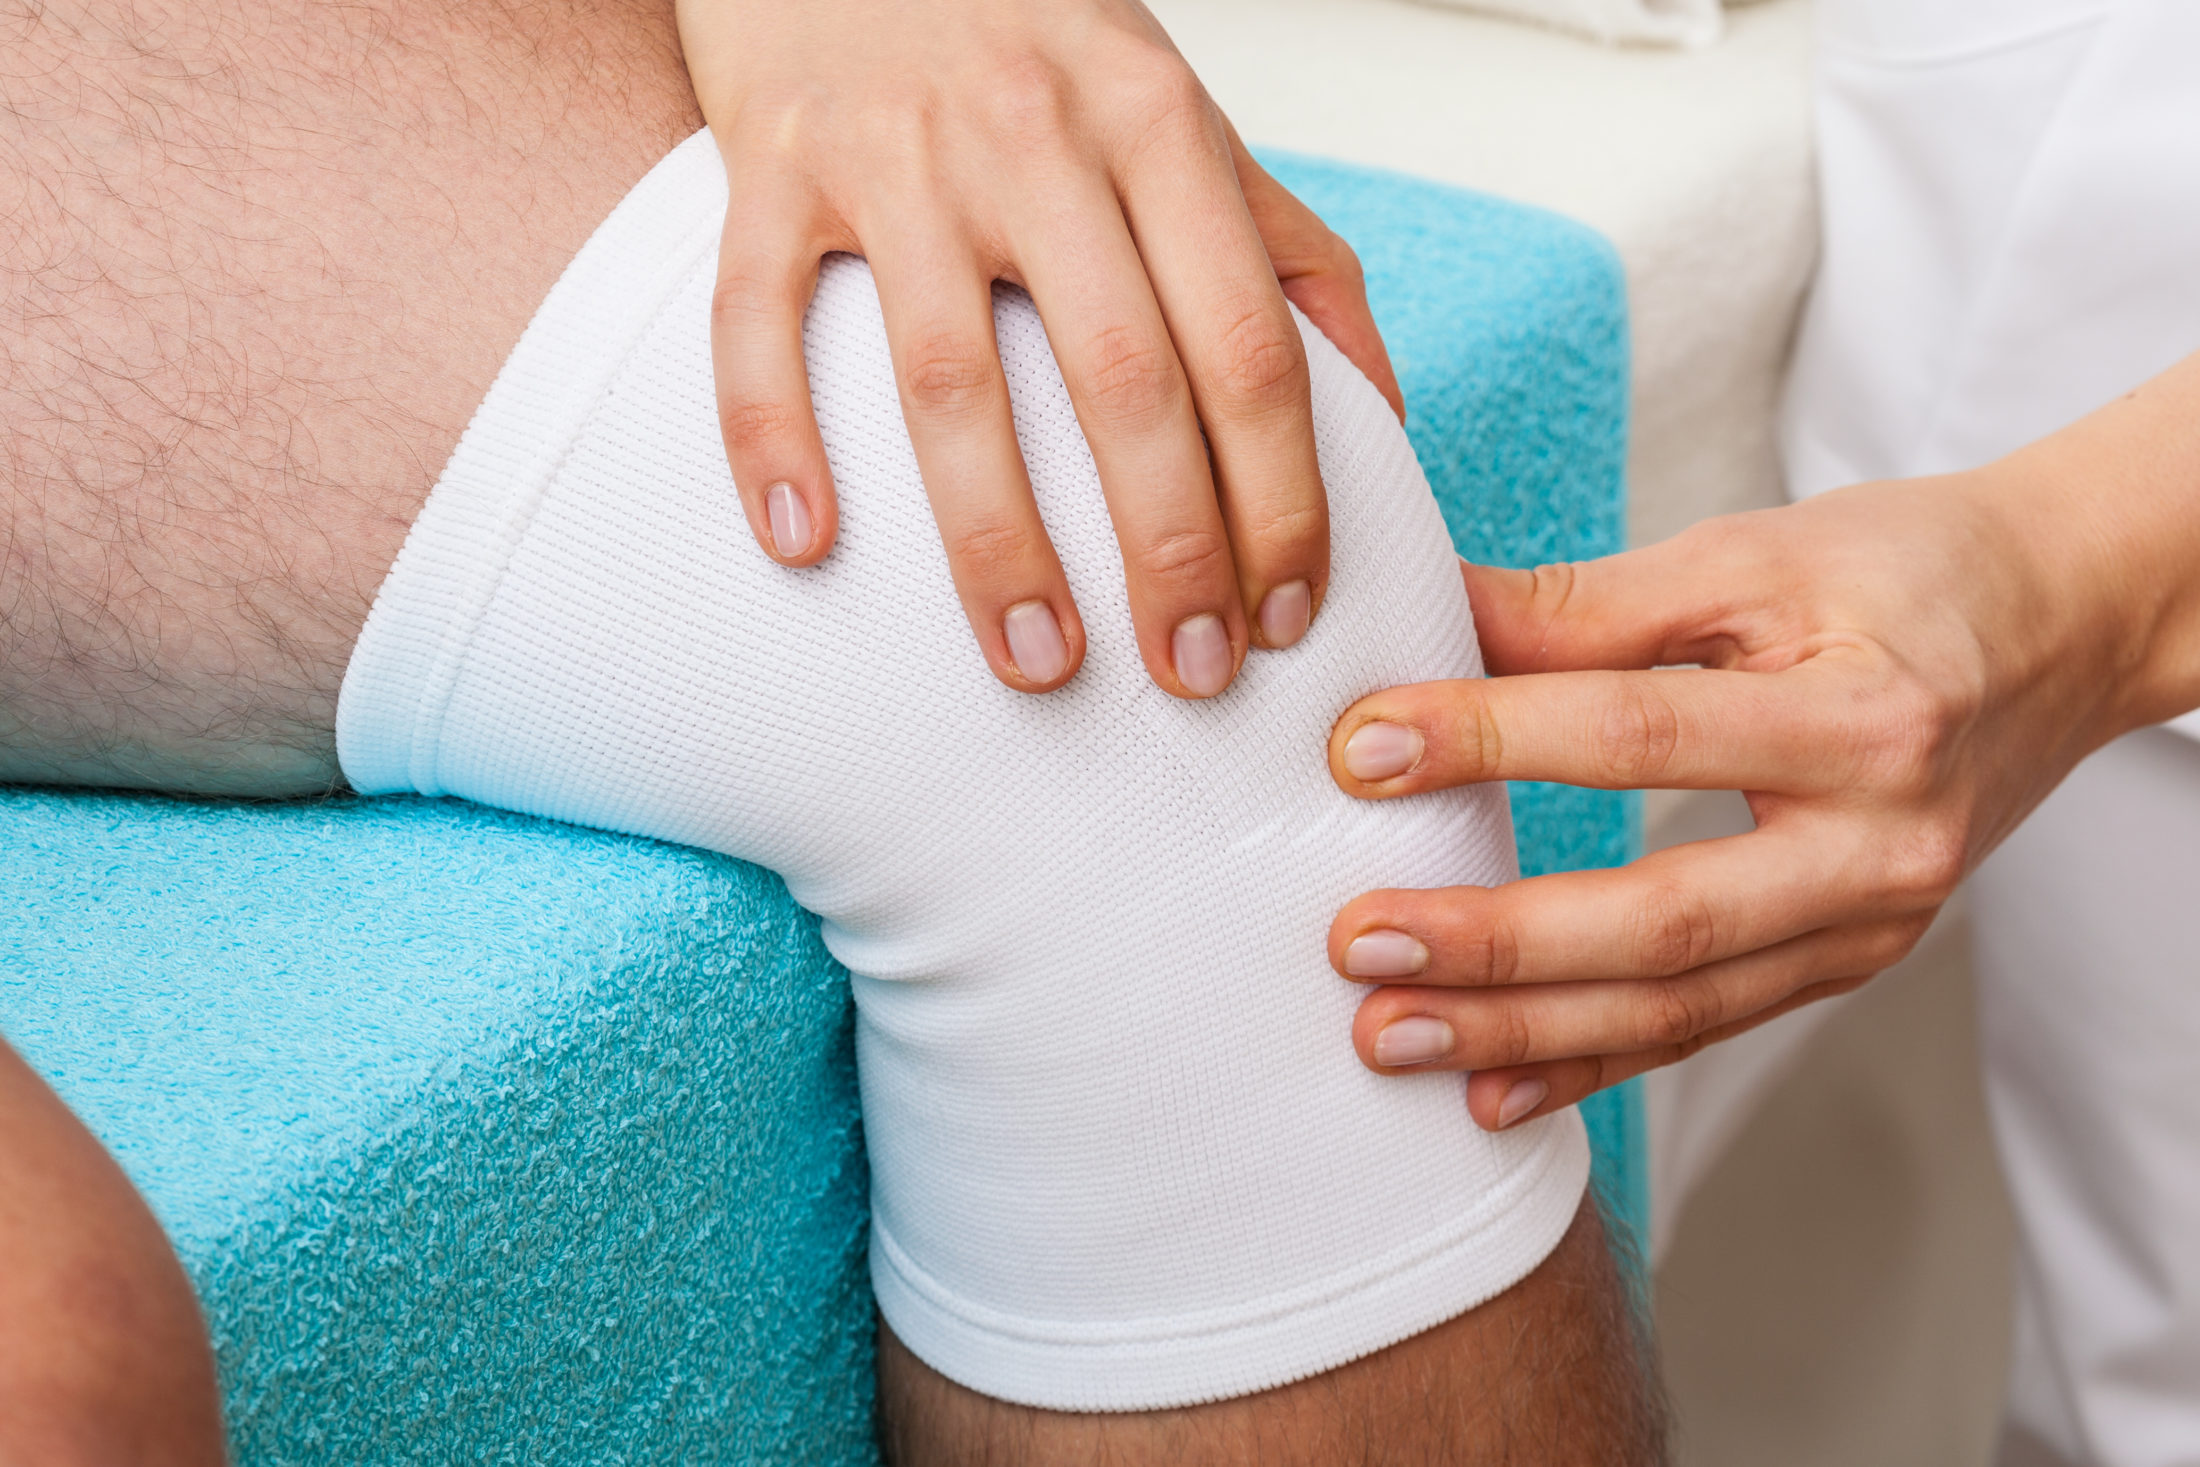 joint replacement rehabilitation